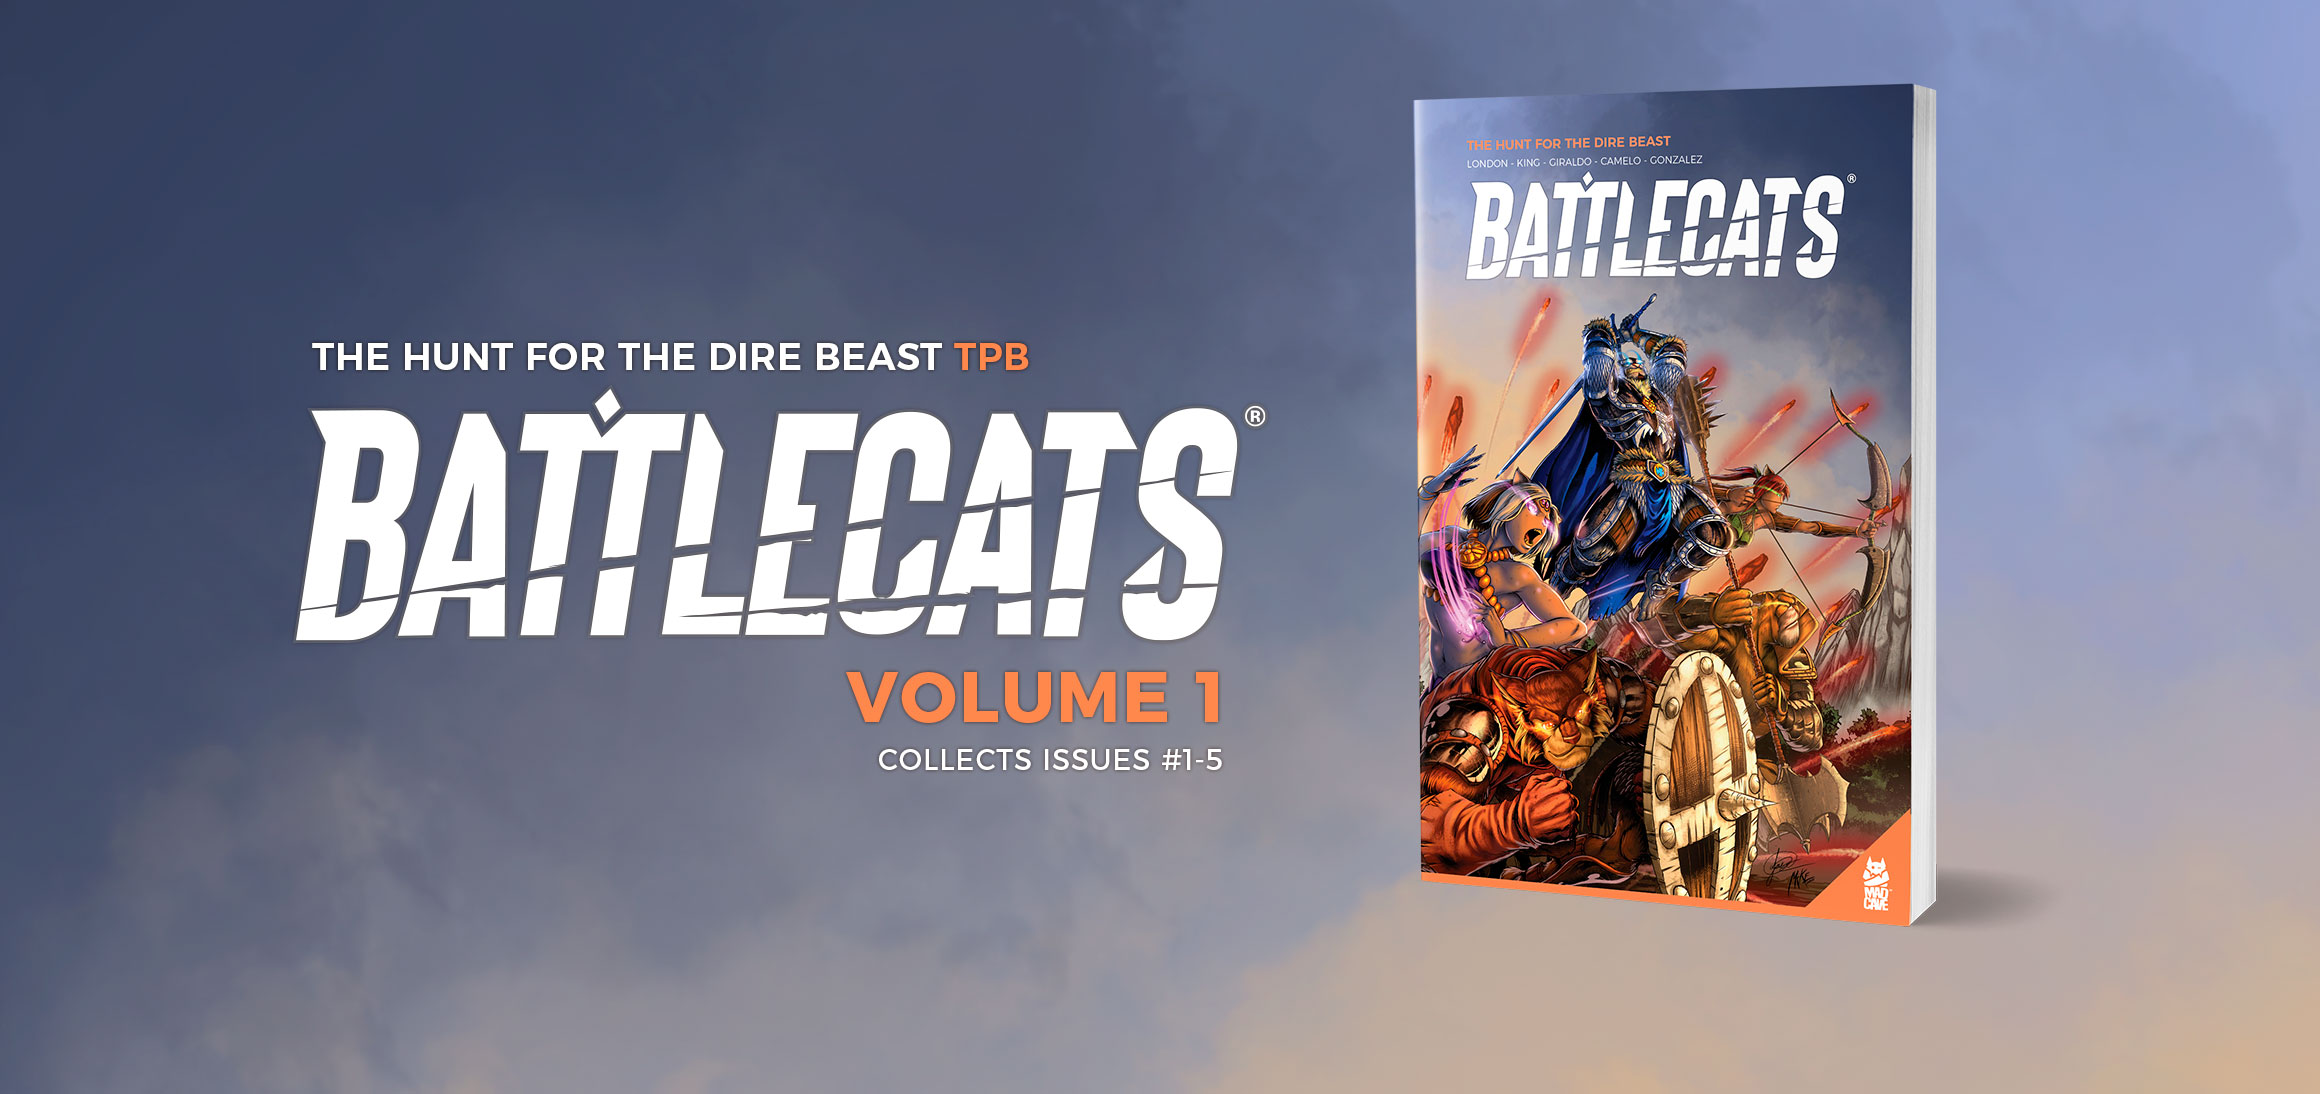 Battlecats Vol 1 cover art